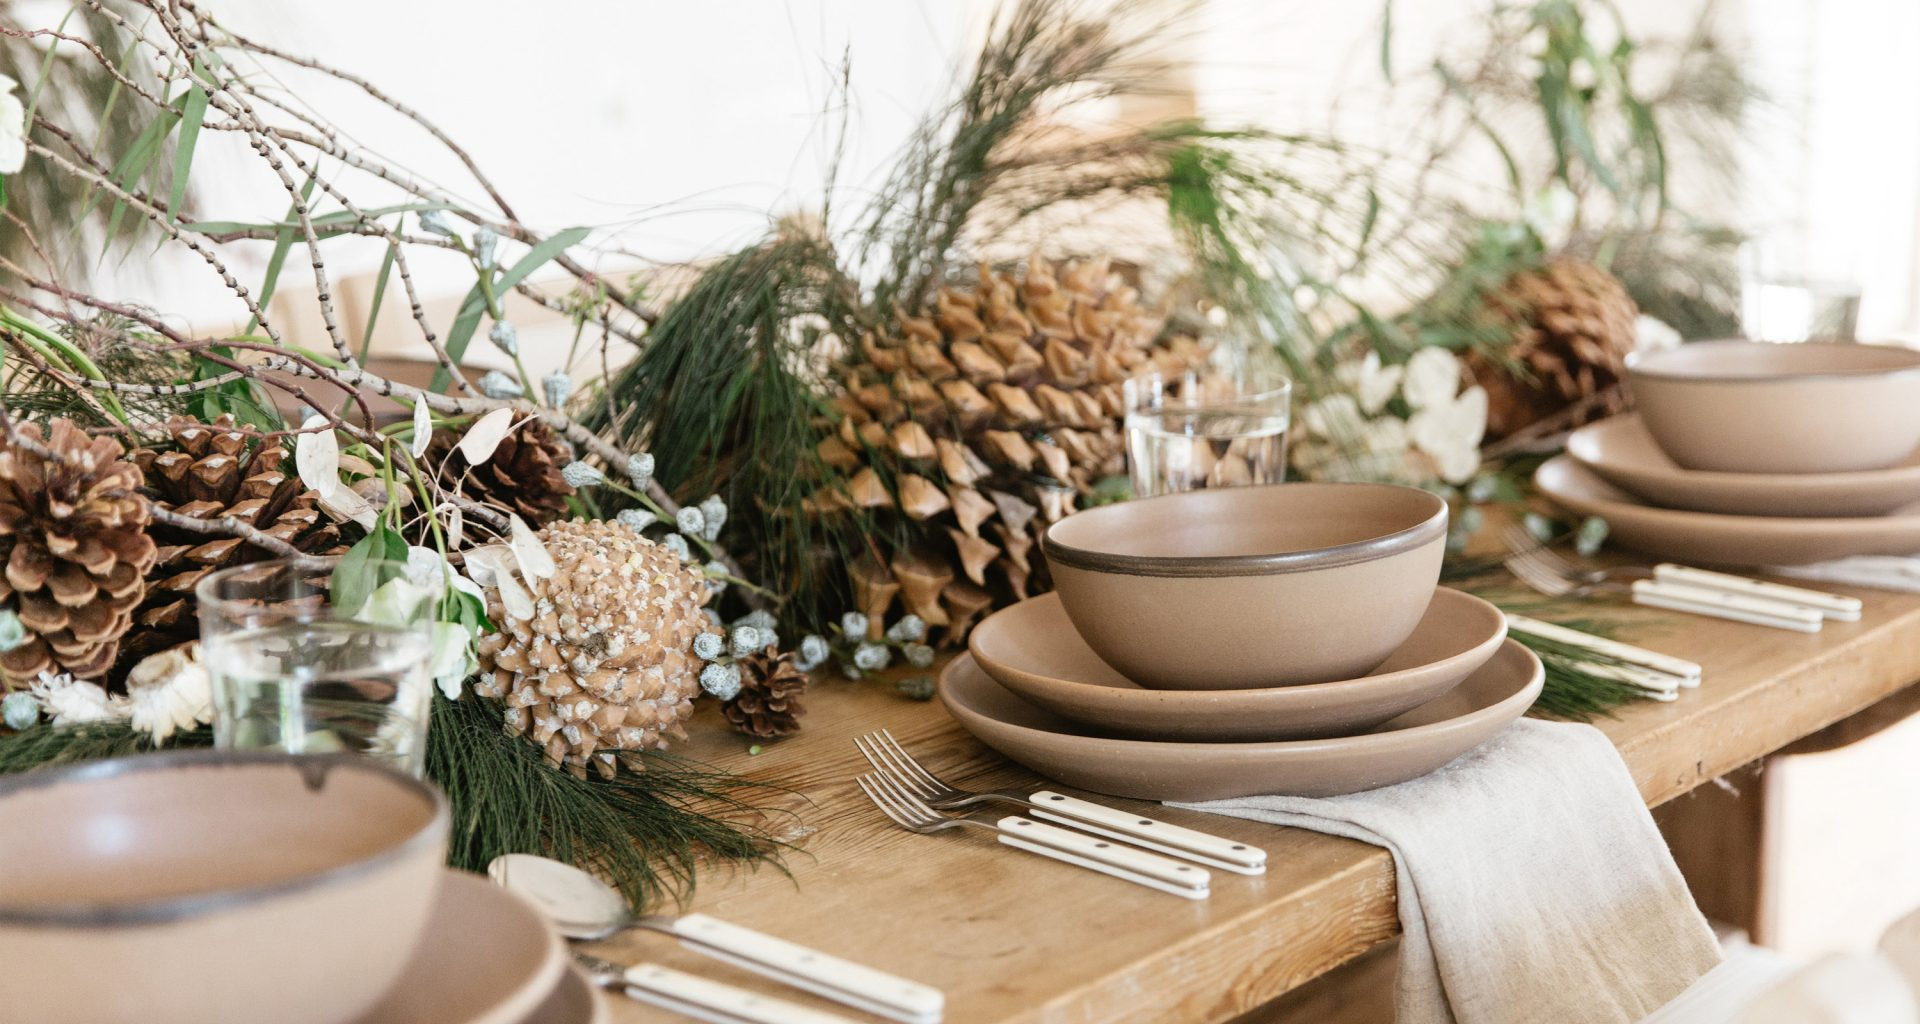 set holiday table 3 ways jenni kayne nicki sebastian photography2 1 1920x1024 - 3 ideias para a mesa de Natal por Jenni Kayne